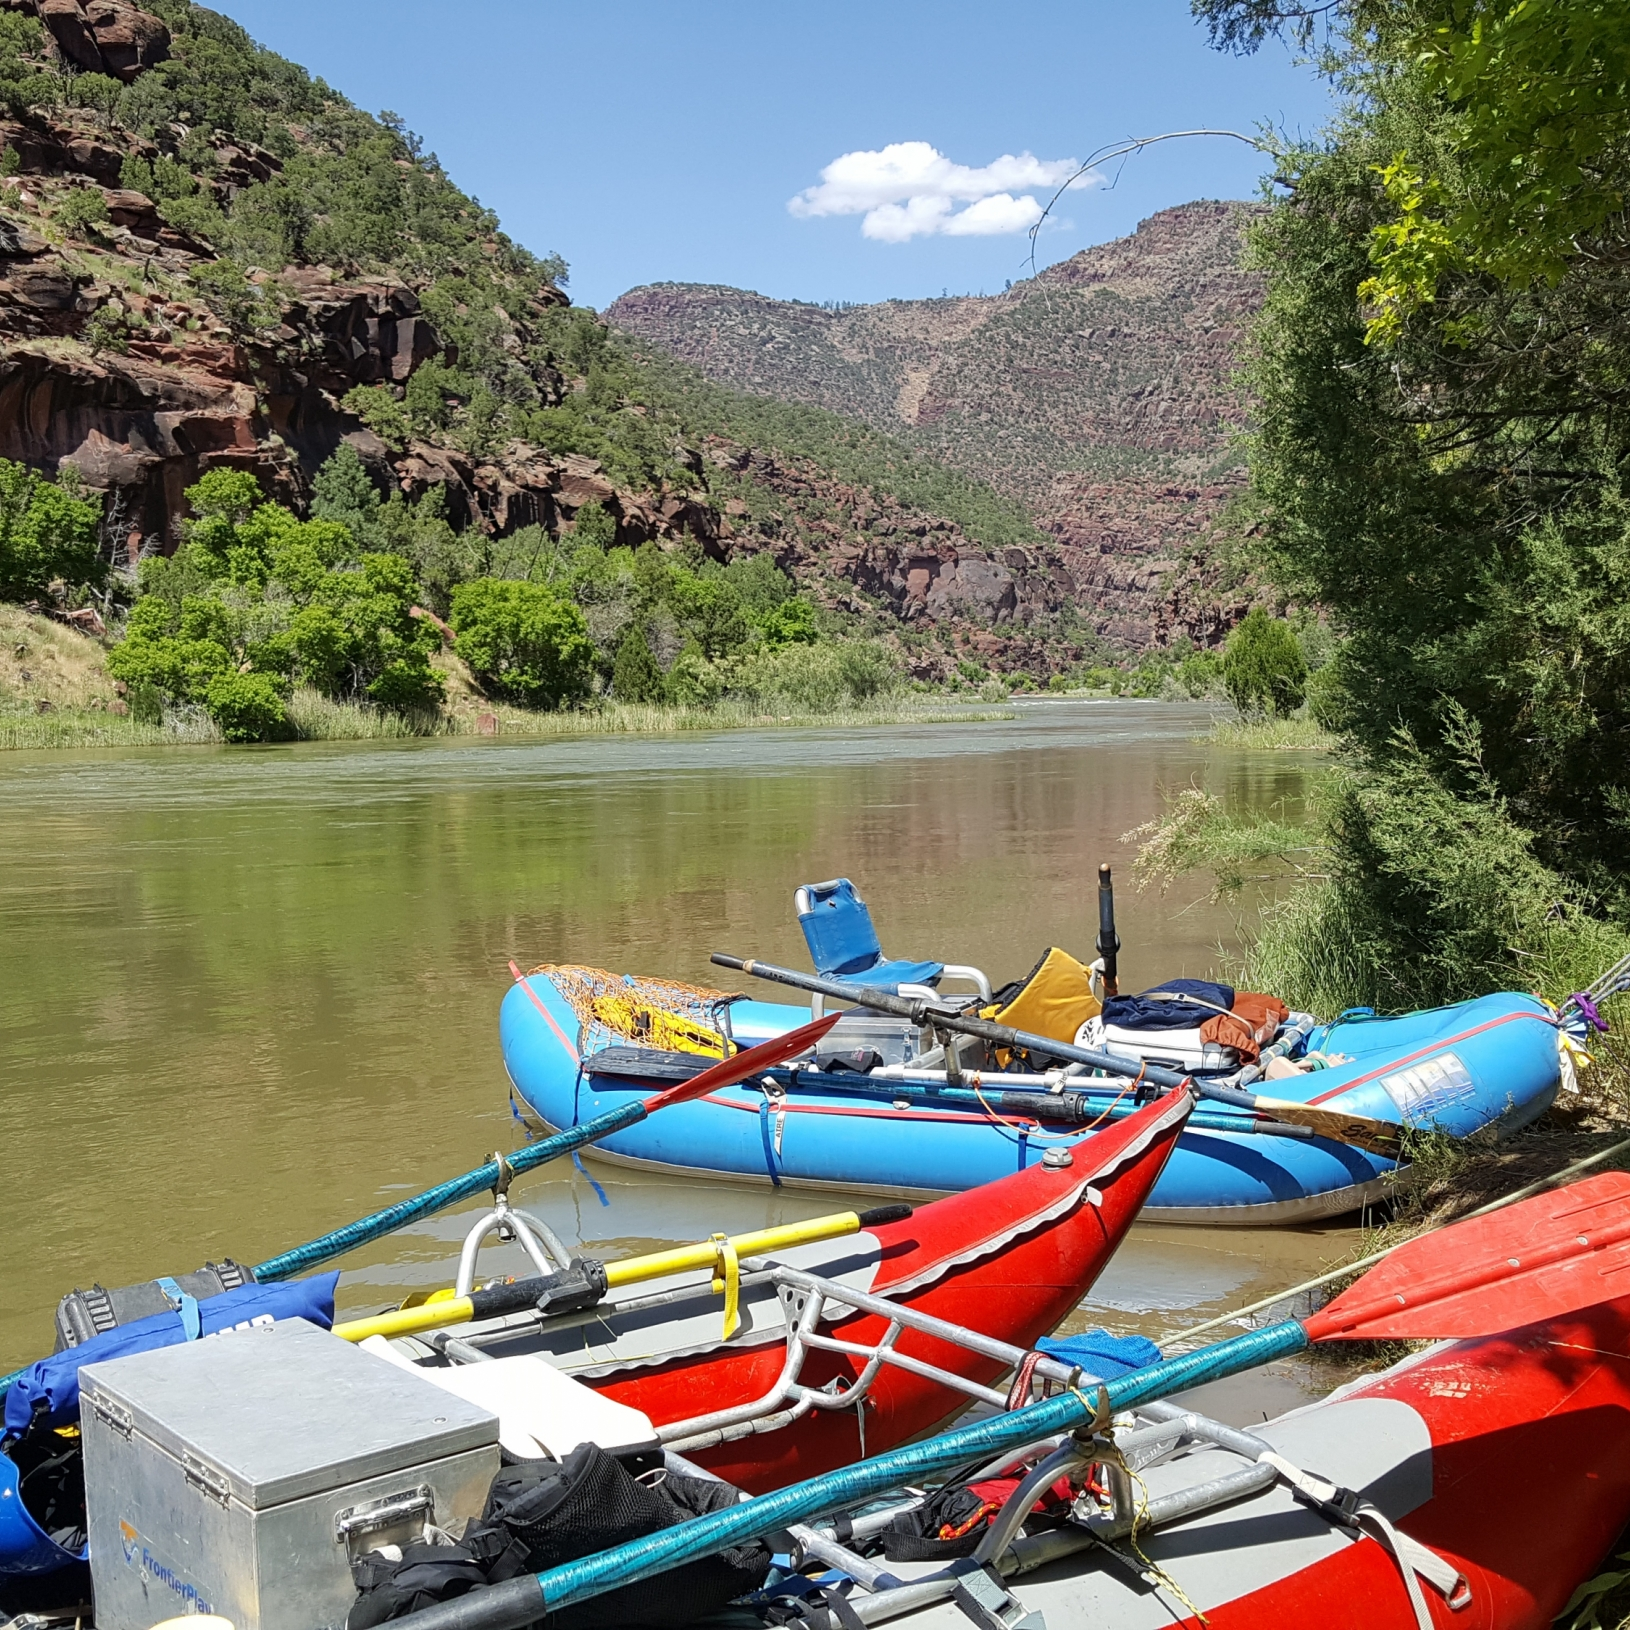 Kayaks and rafts on the river